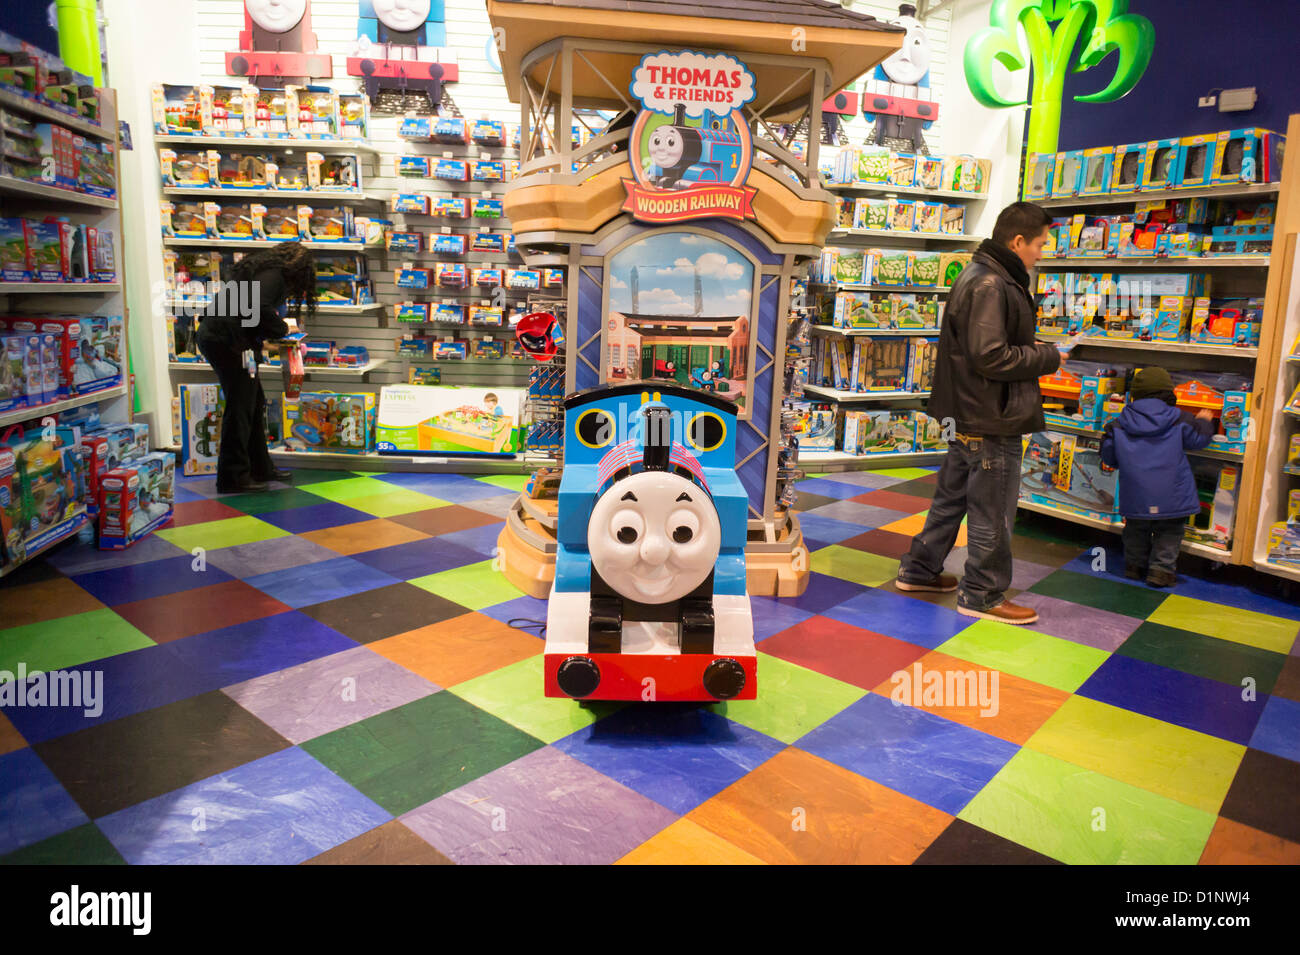 What Do You Use To Store Toys In : Thomas the tank engine merchandise is seen in a toys r us